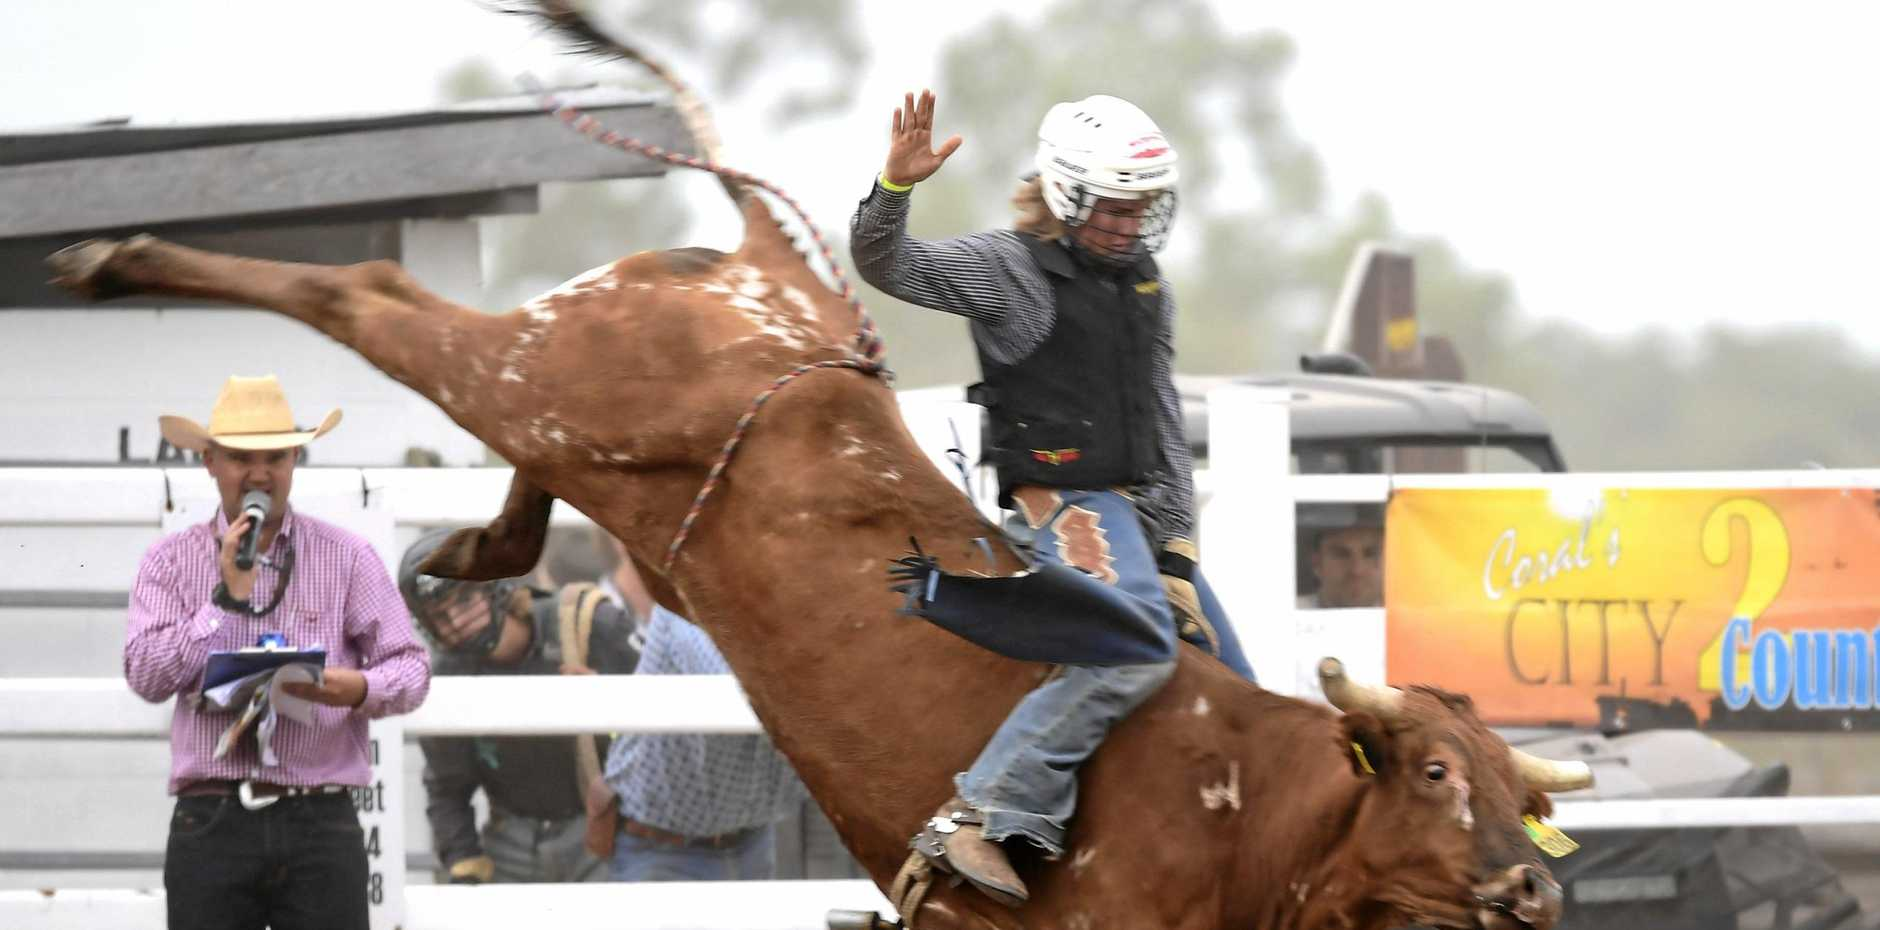 BANG FOR YOUR BUCK: Lane Johns Jnr in the steer ride at a past edition of the Bowen River Rodeo and Campdraft.